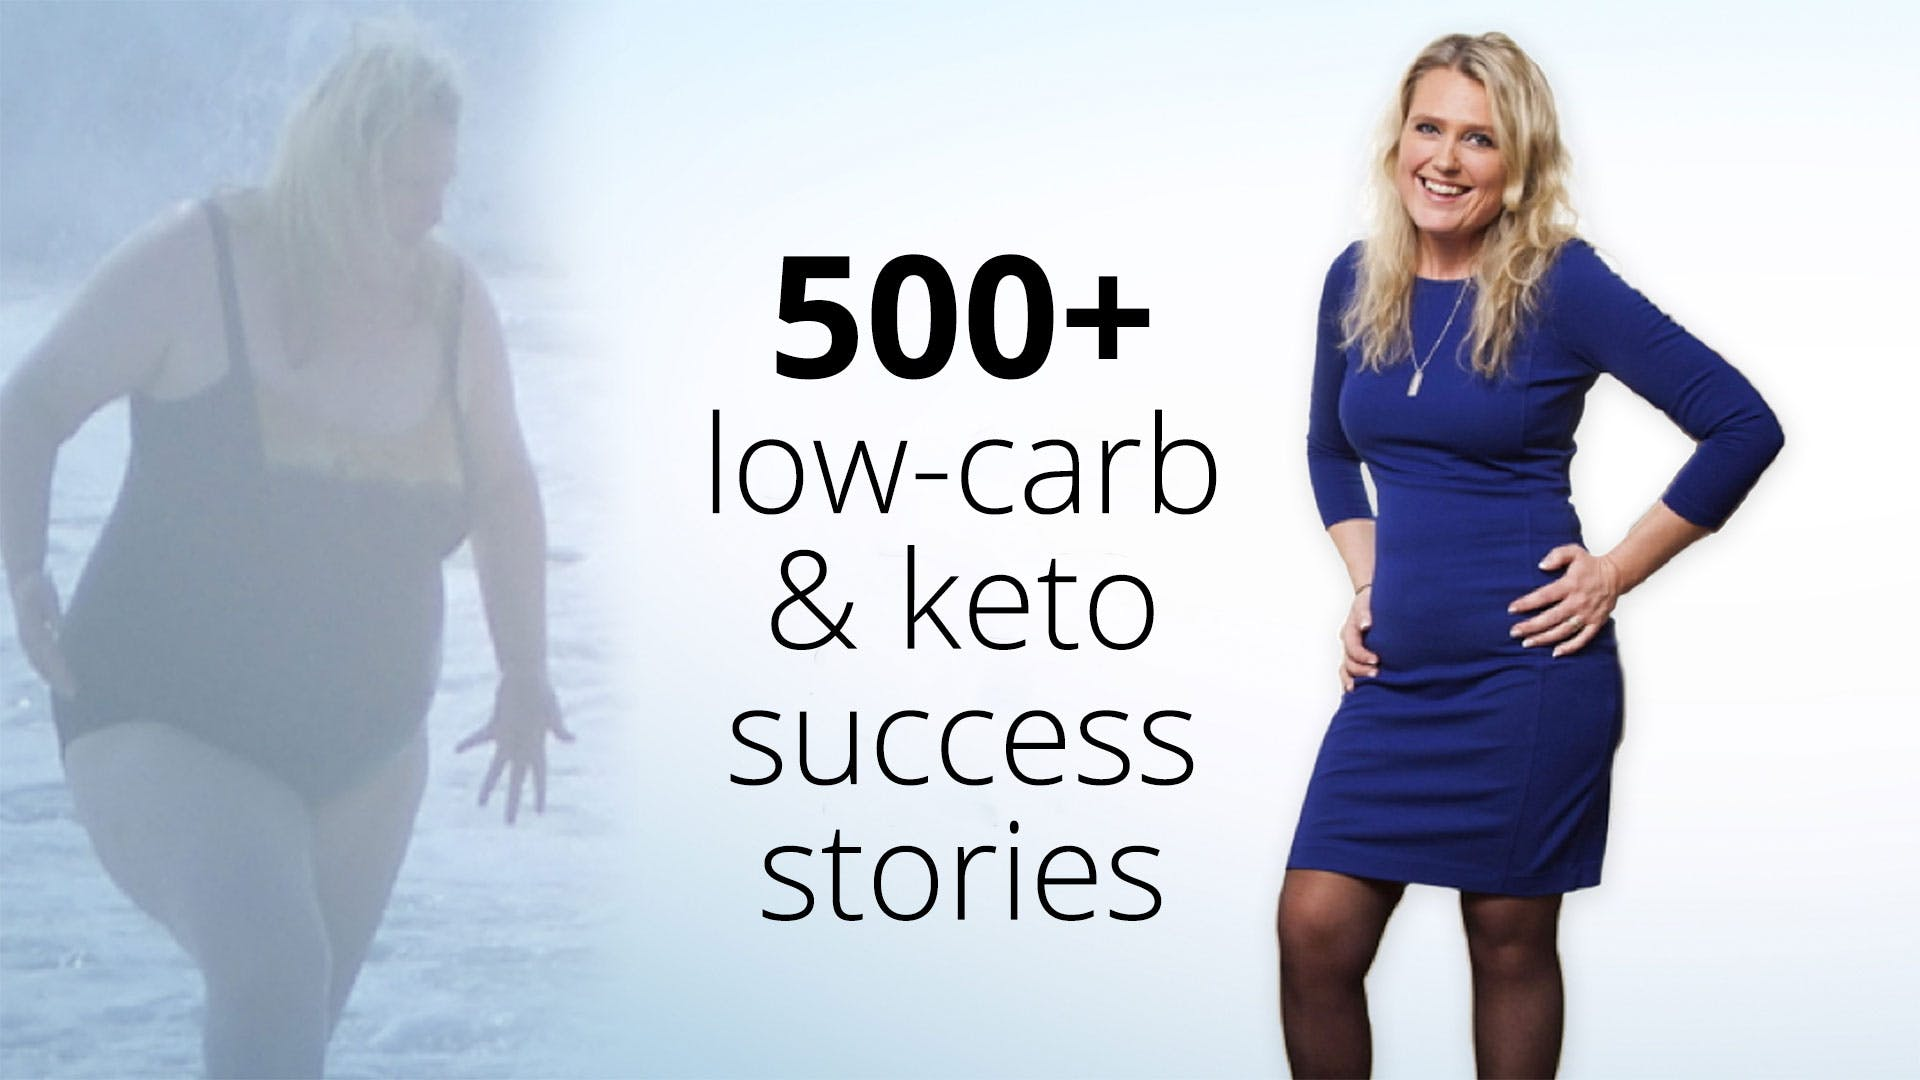 600+ Low-Carb & Keto Success Stories - Diet Doctor